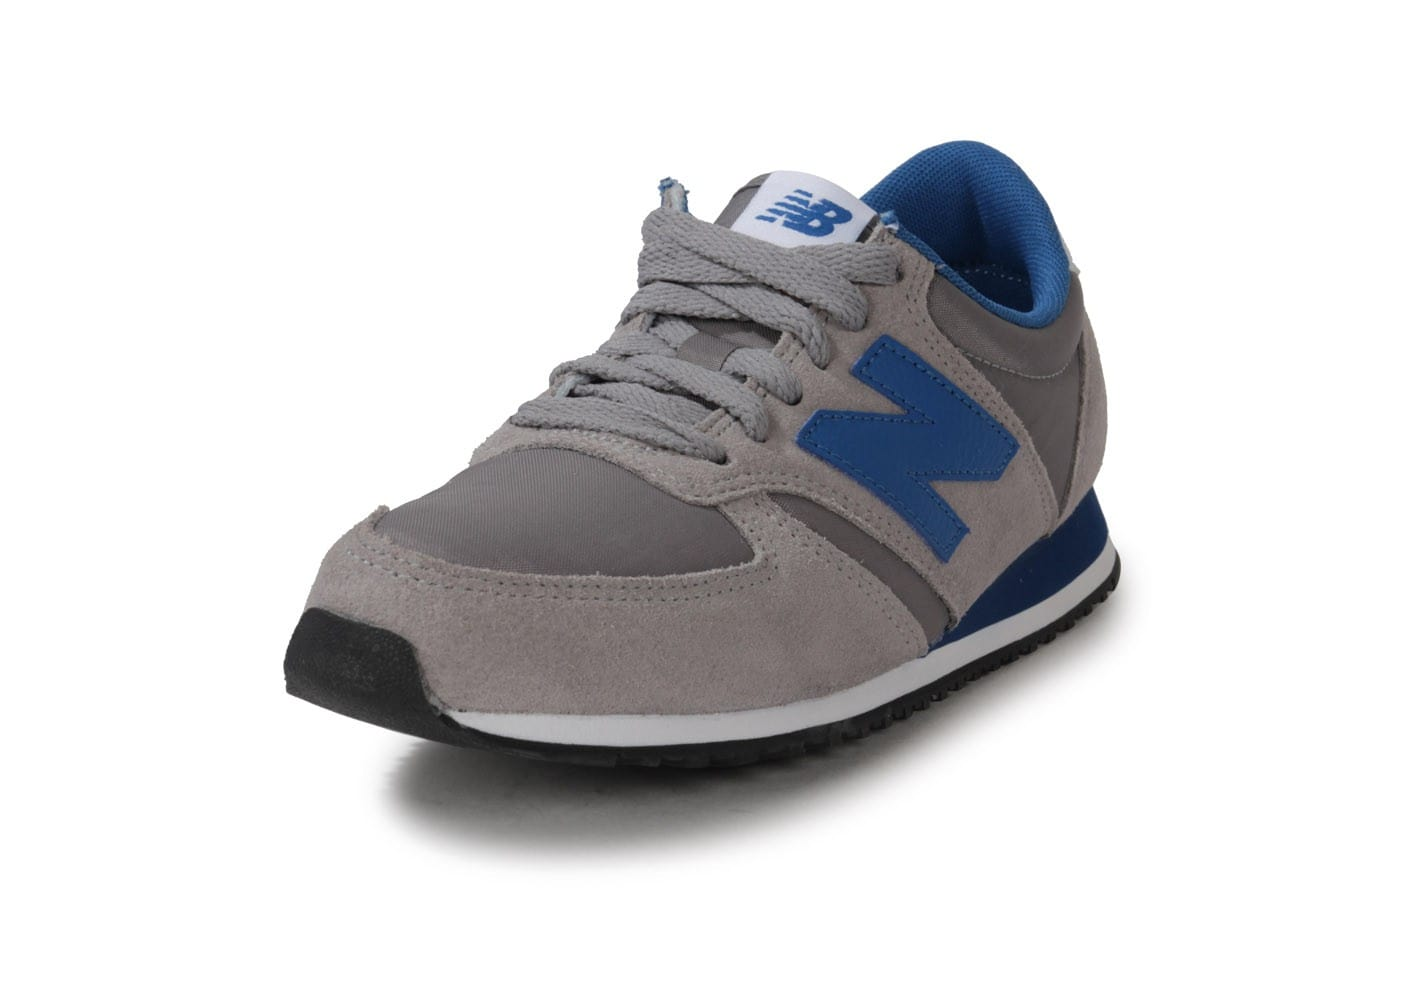 new balance w420 grise chaussures chaussures chausport. Black Bedroom Furniture Sets. Home Design Ideas